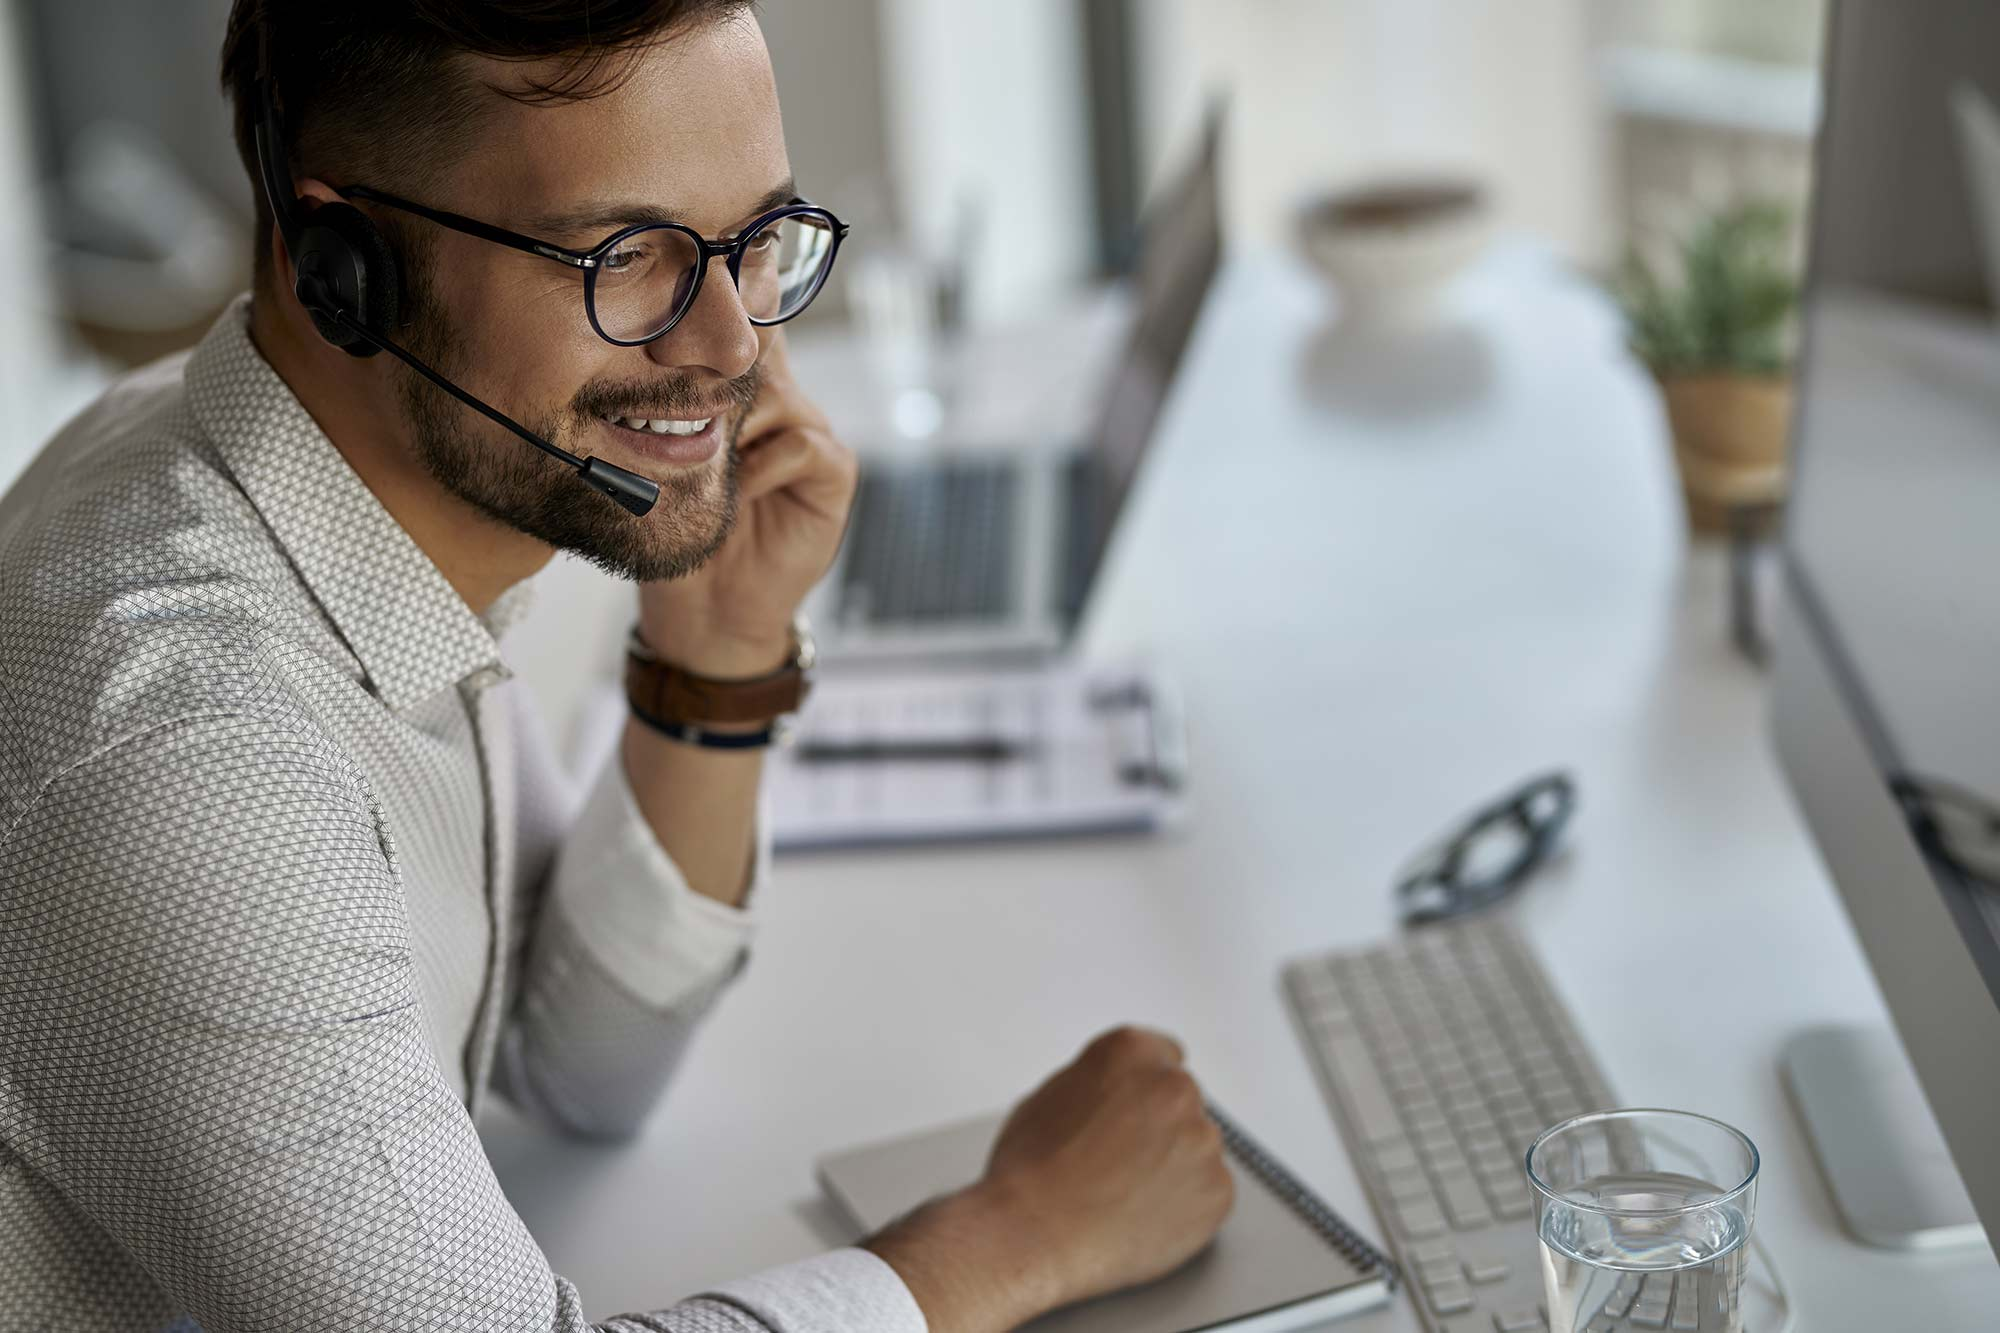 IT guy answering call